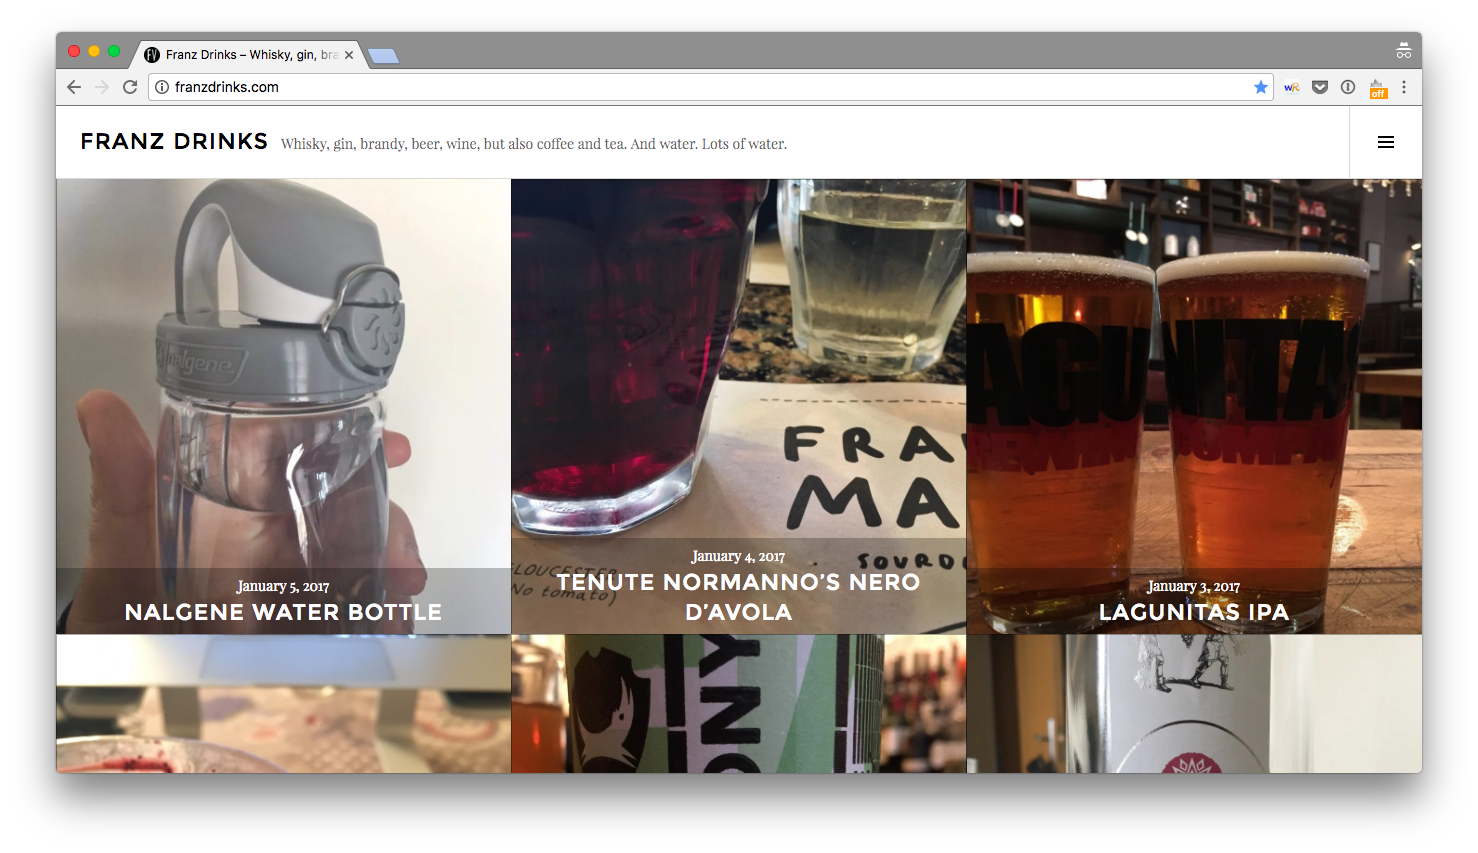 Franz Drinks homepage